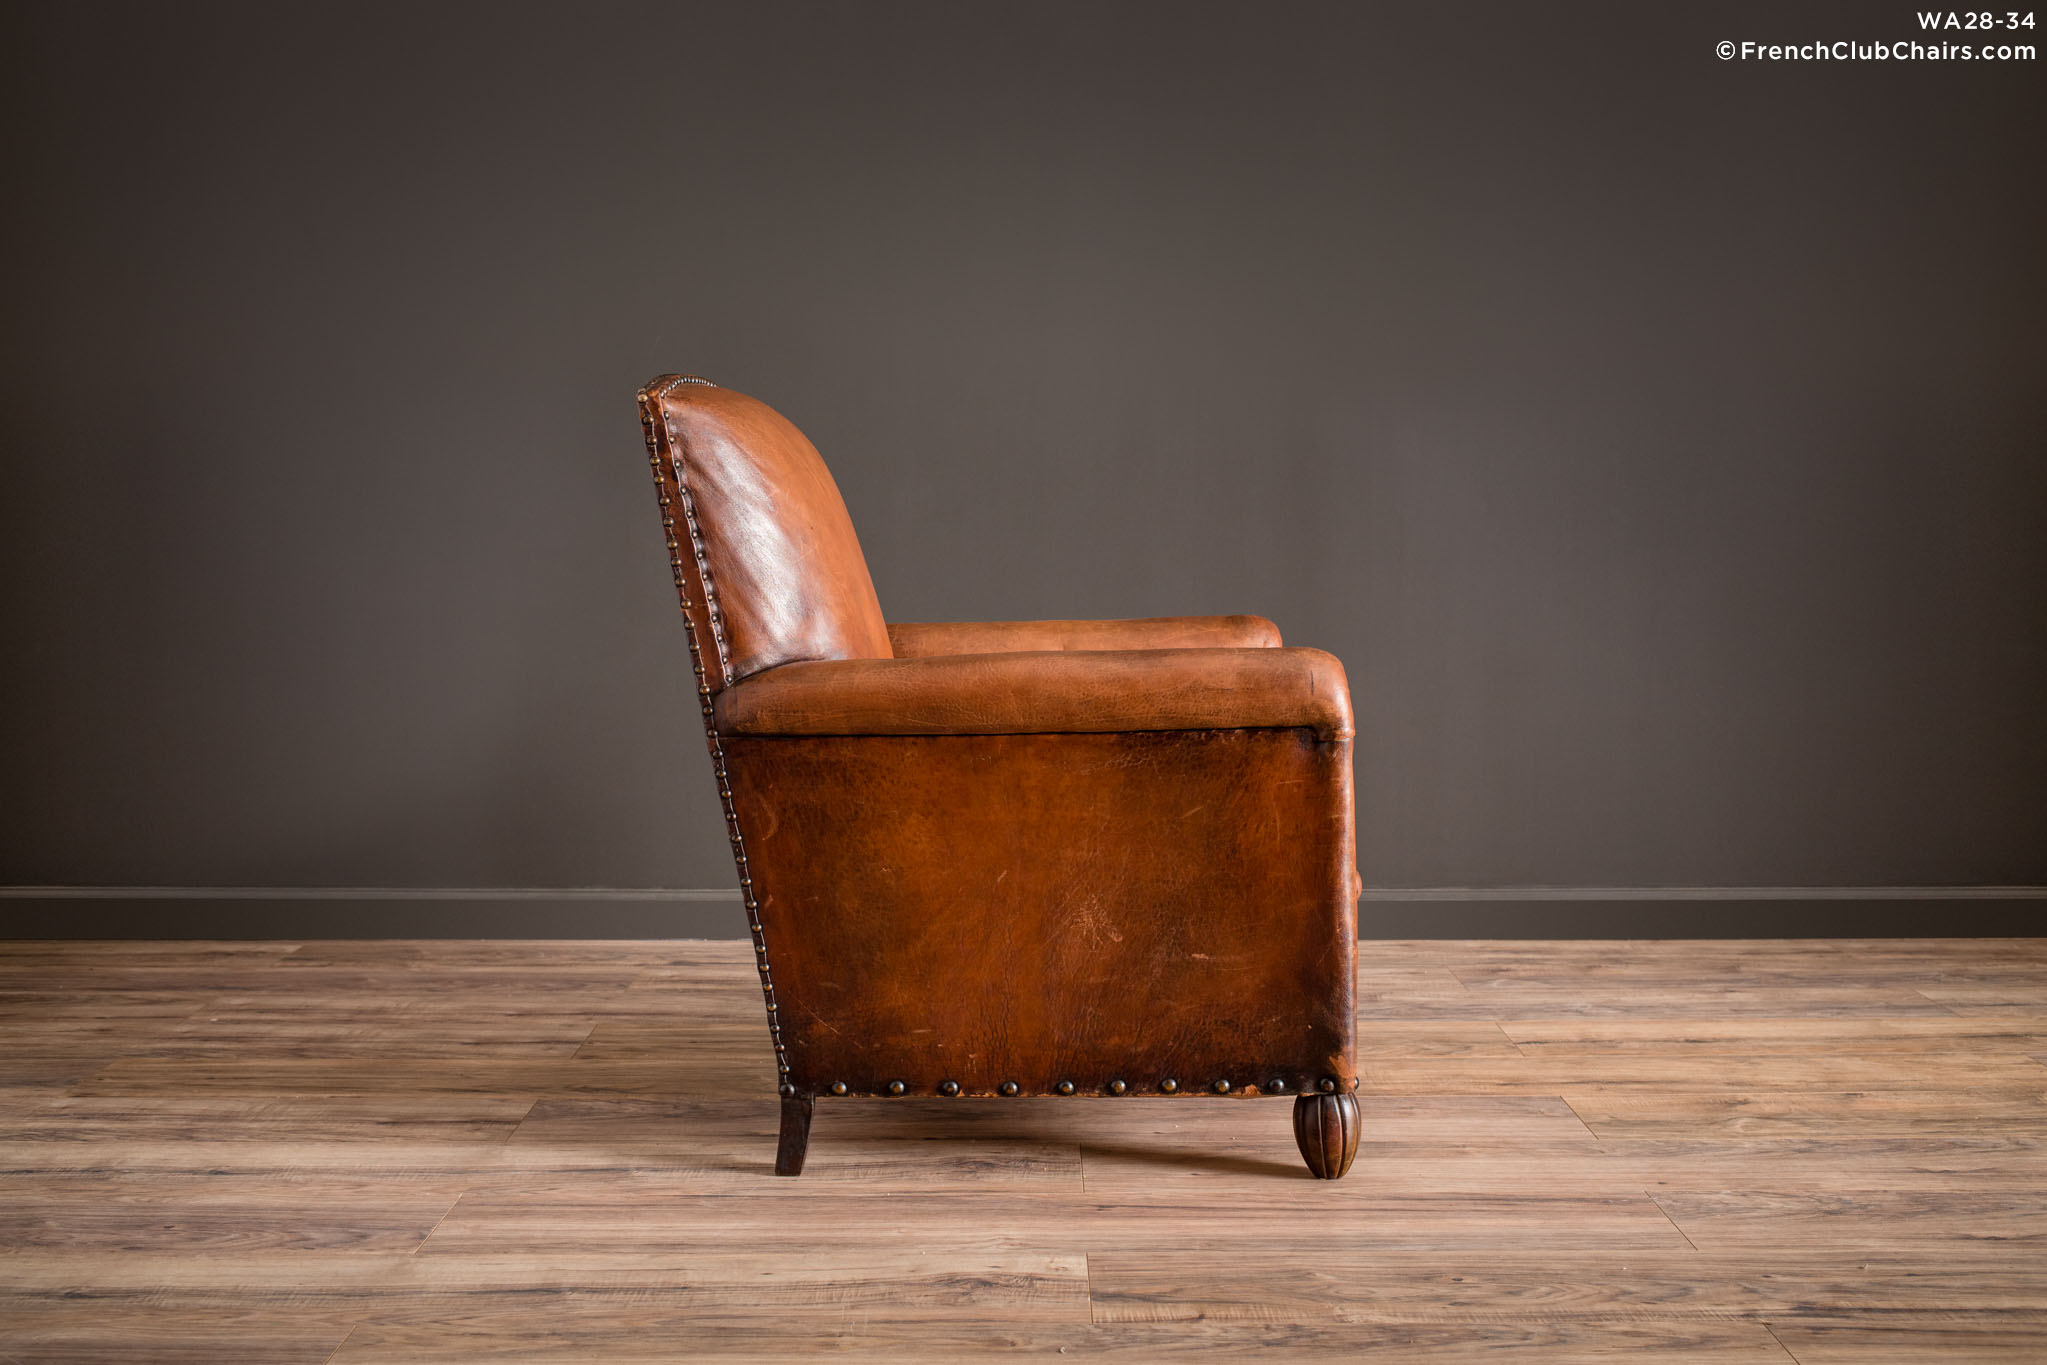 WA_28-32_Moutenee_Library_Solo_R_3RT1-williams-antiks-leather-french-club-chair-wa_fcccom